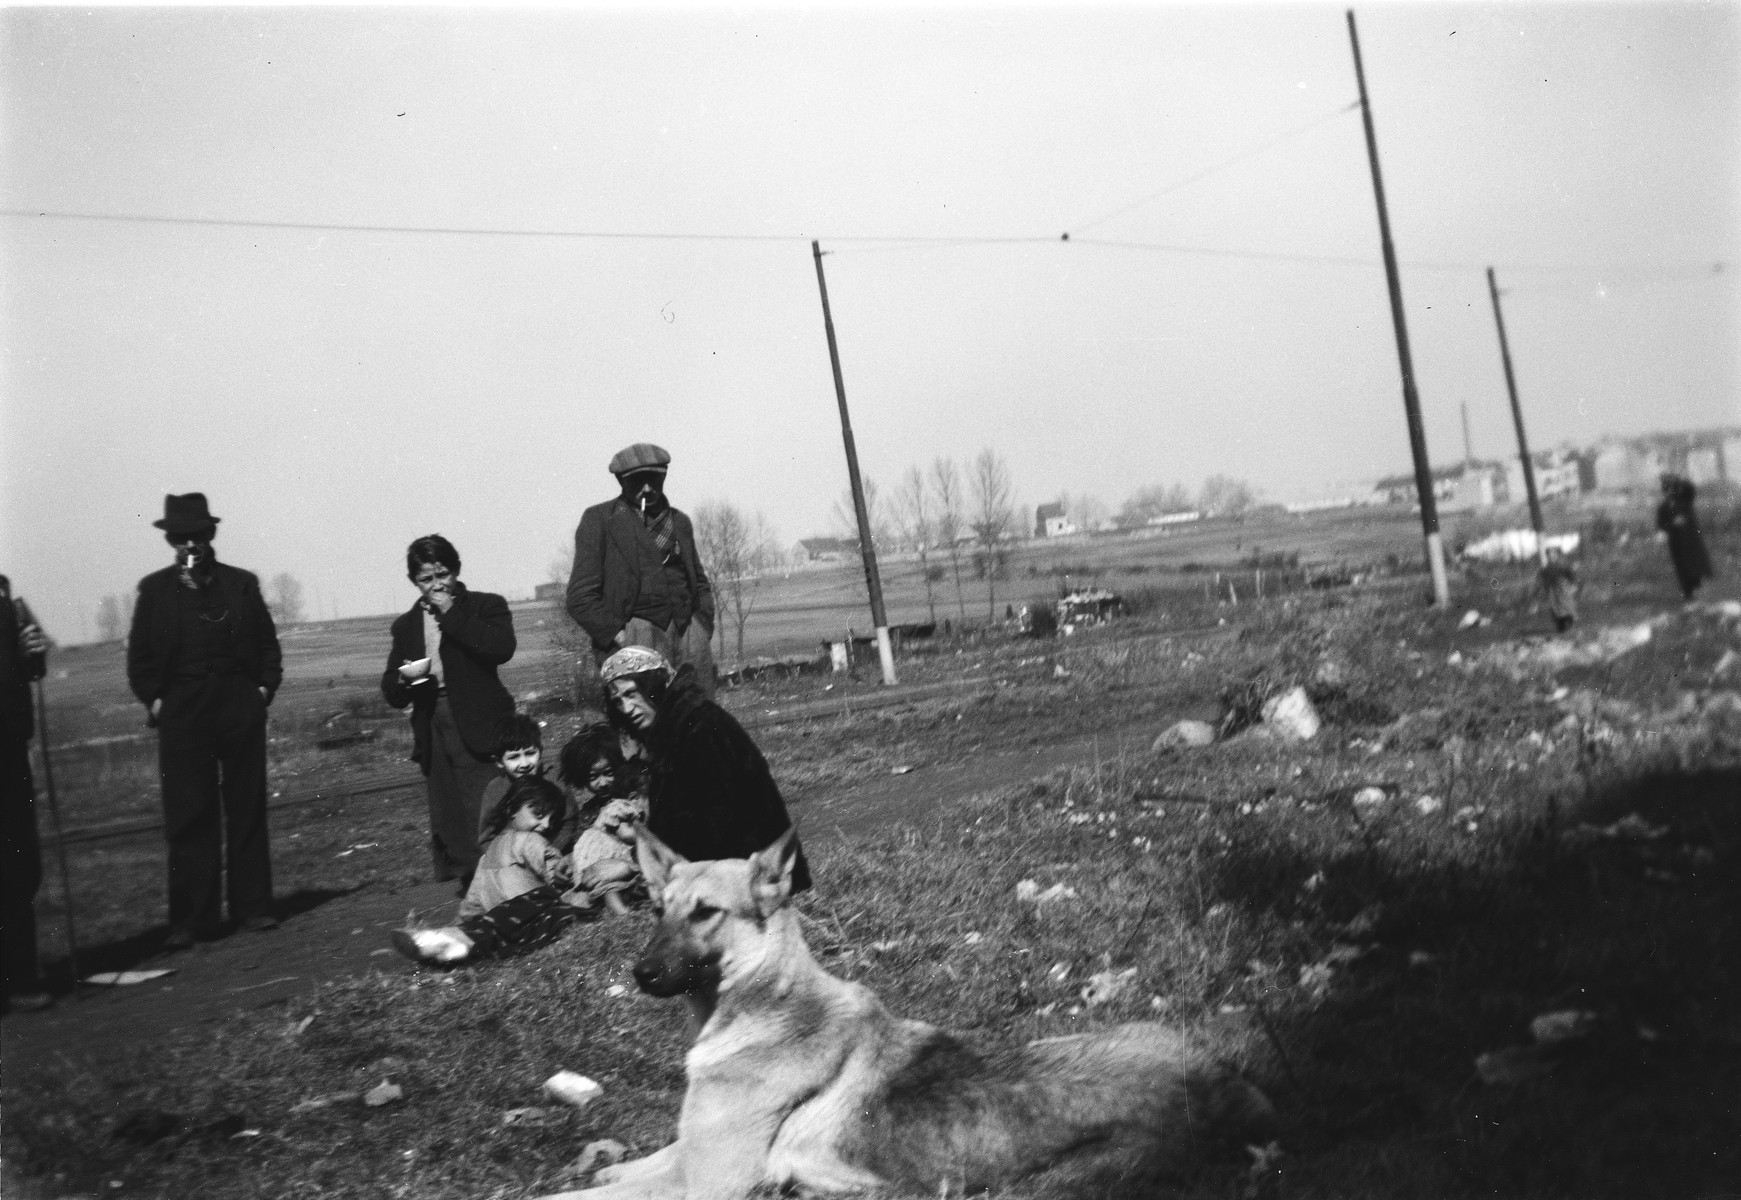 A Romani (Gypsy) family poses outdoors , while a dog sits in the foreground.